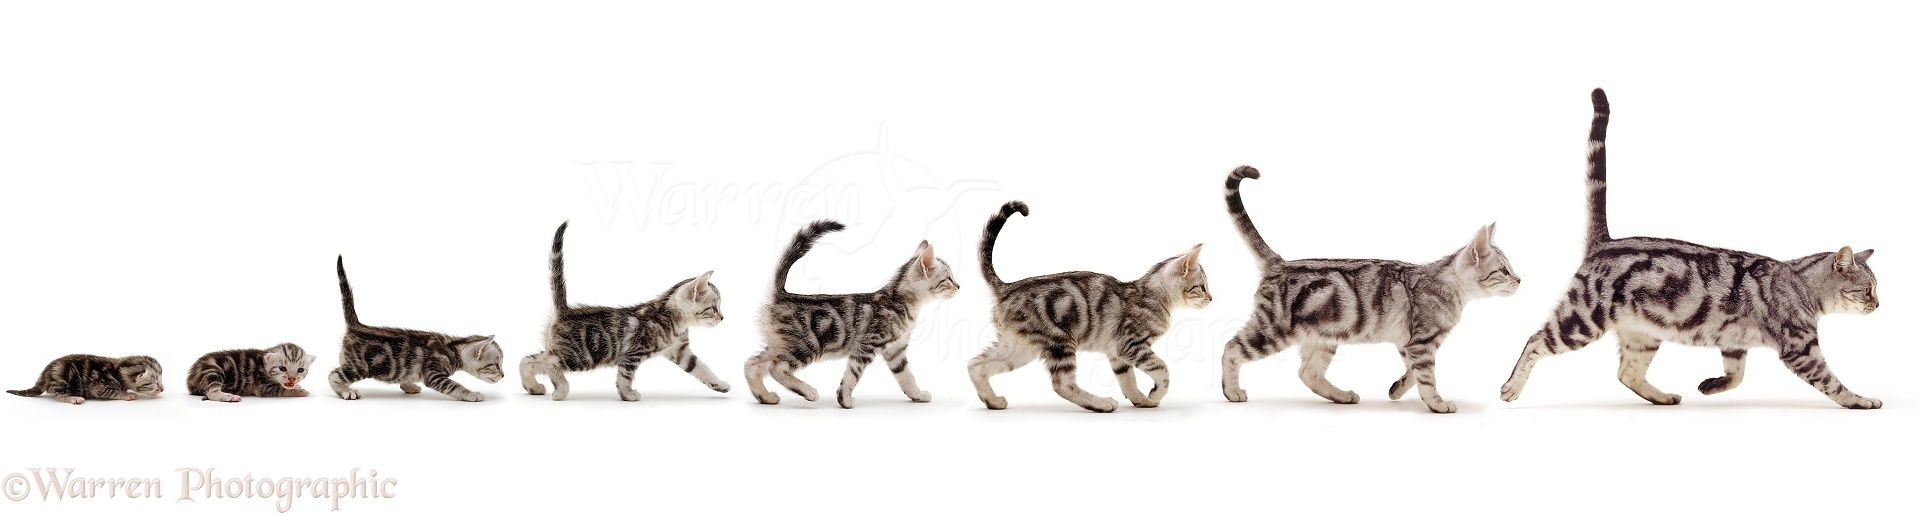 Http Www Warrenphotographic Co Uk 42493 Silver Tabby Cat Growing Up Sequence Stages Silver Tabby Cat Tabby Cat Tabby